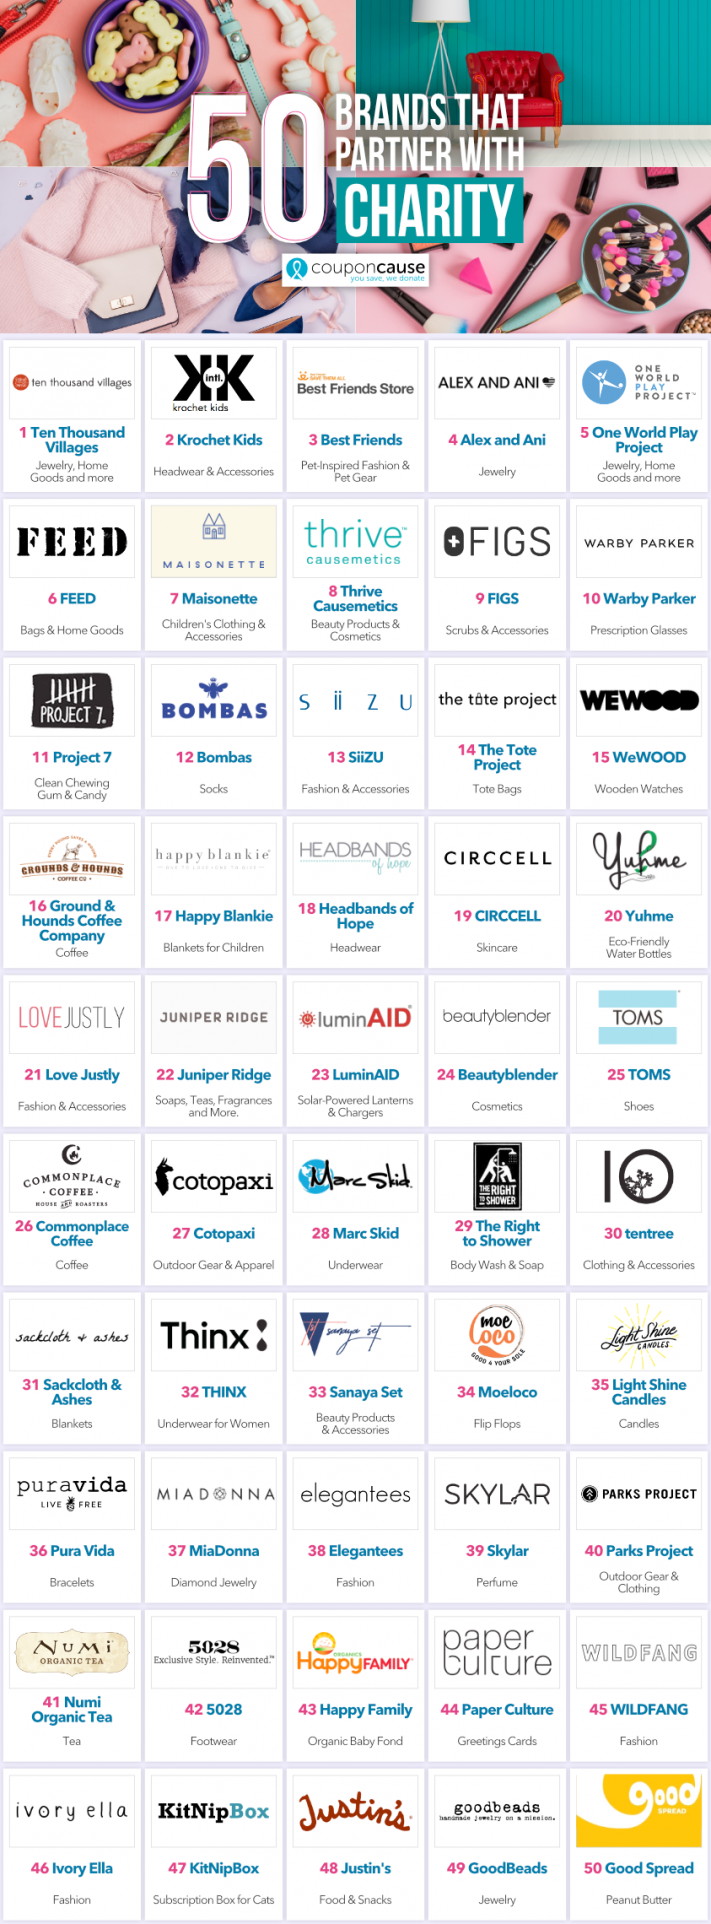 50 Brands That Partner with Charity - Fashion, Home Goods, Jewelry and More!